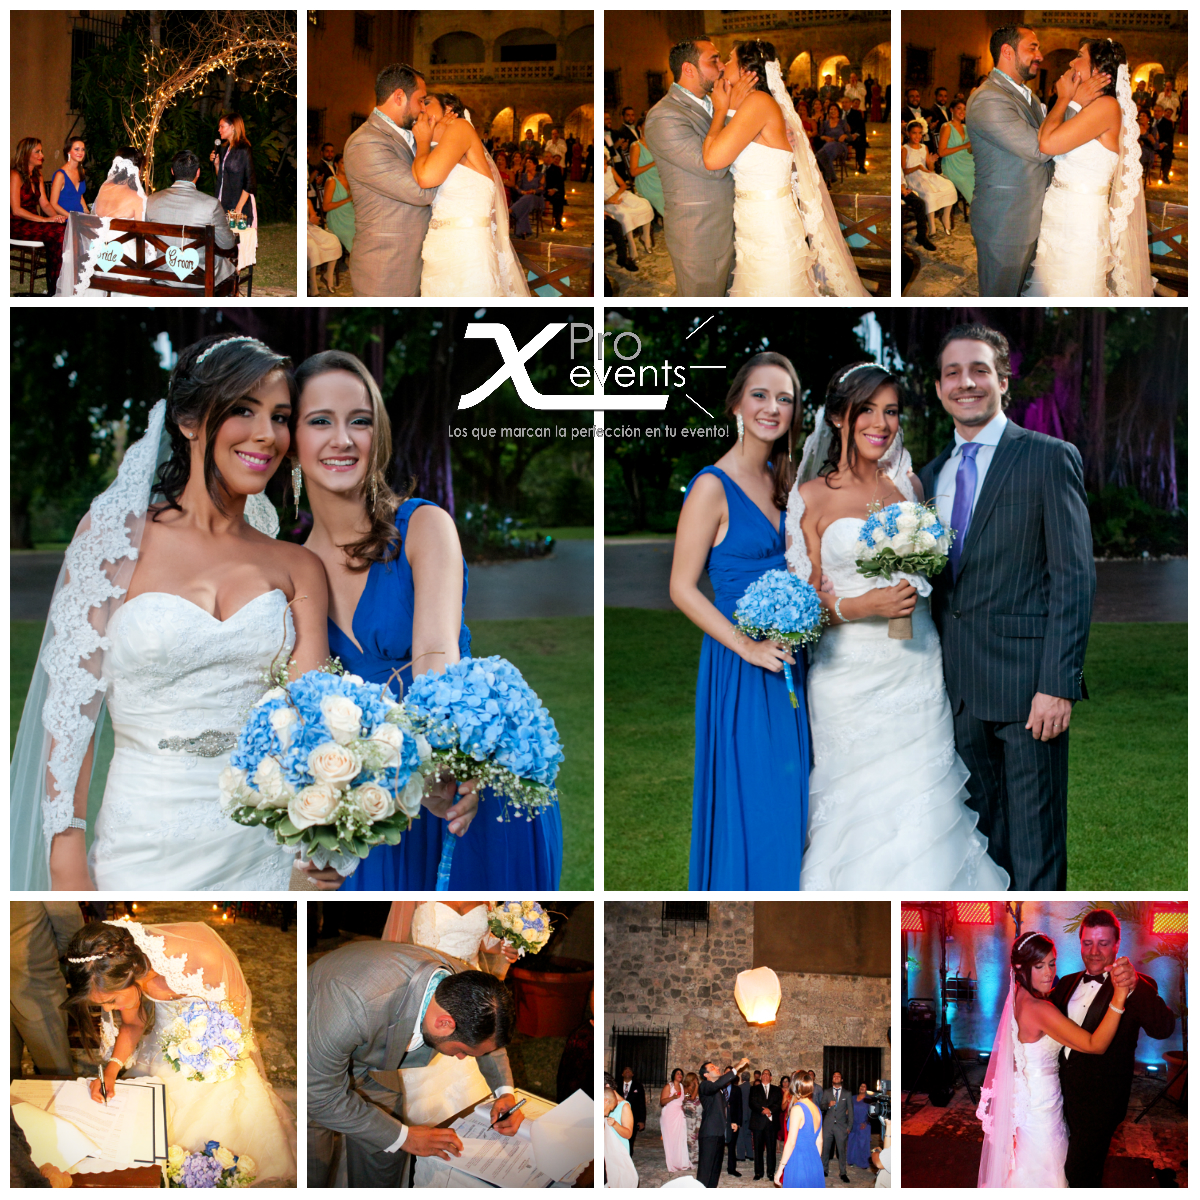 www.Xproevents.com - Jan Mario & Karla Collage 2.jpg